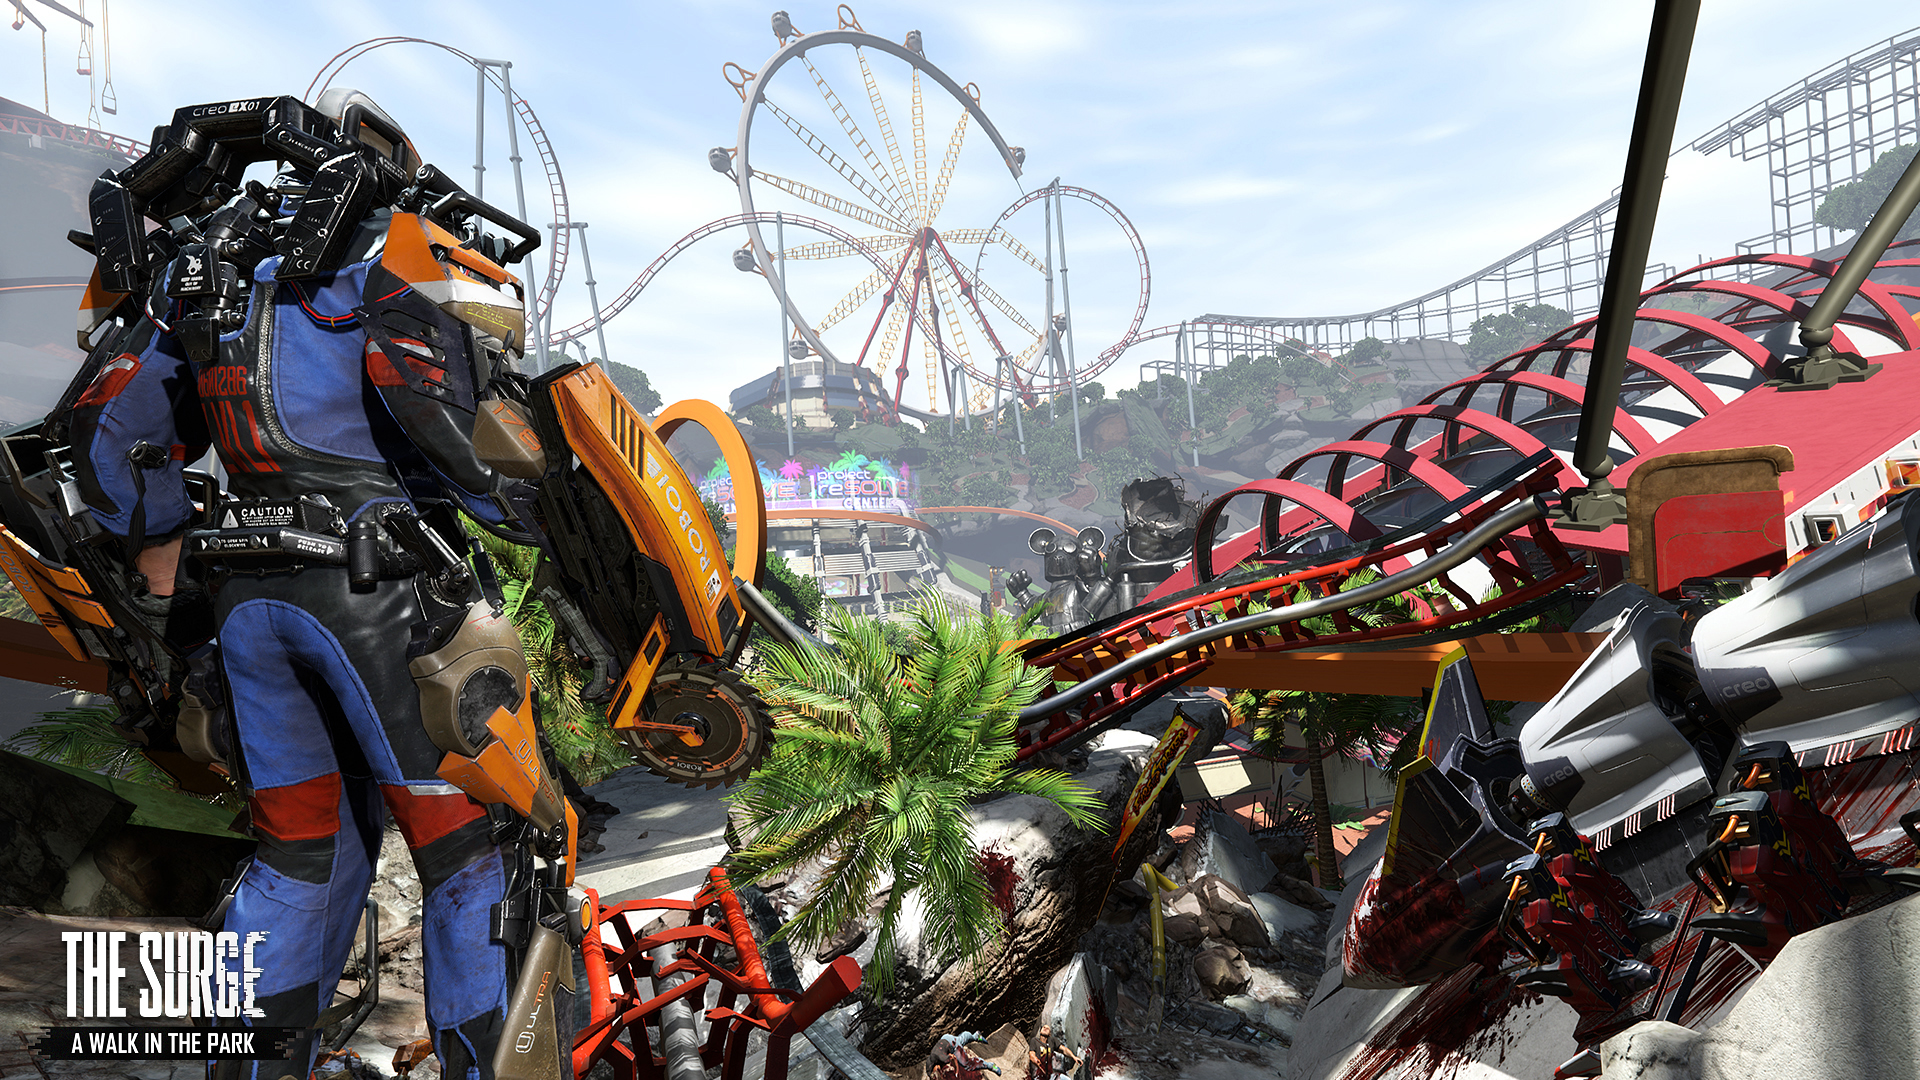 the-surge-deck13-focus-home-interactive-a-walk-in-the-park-dlc-screenshots-playstation-4-xbox-one-pc-steam